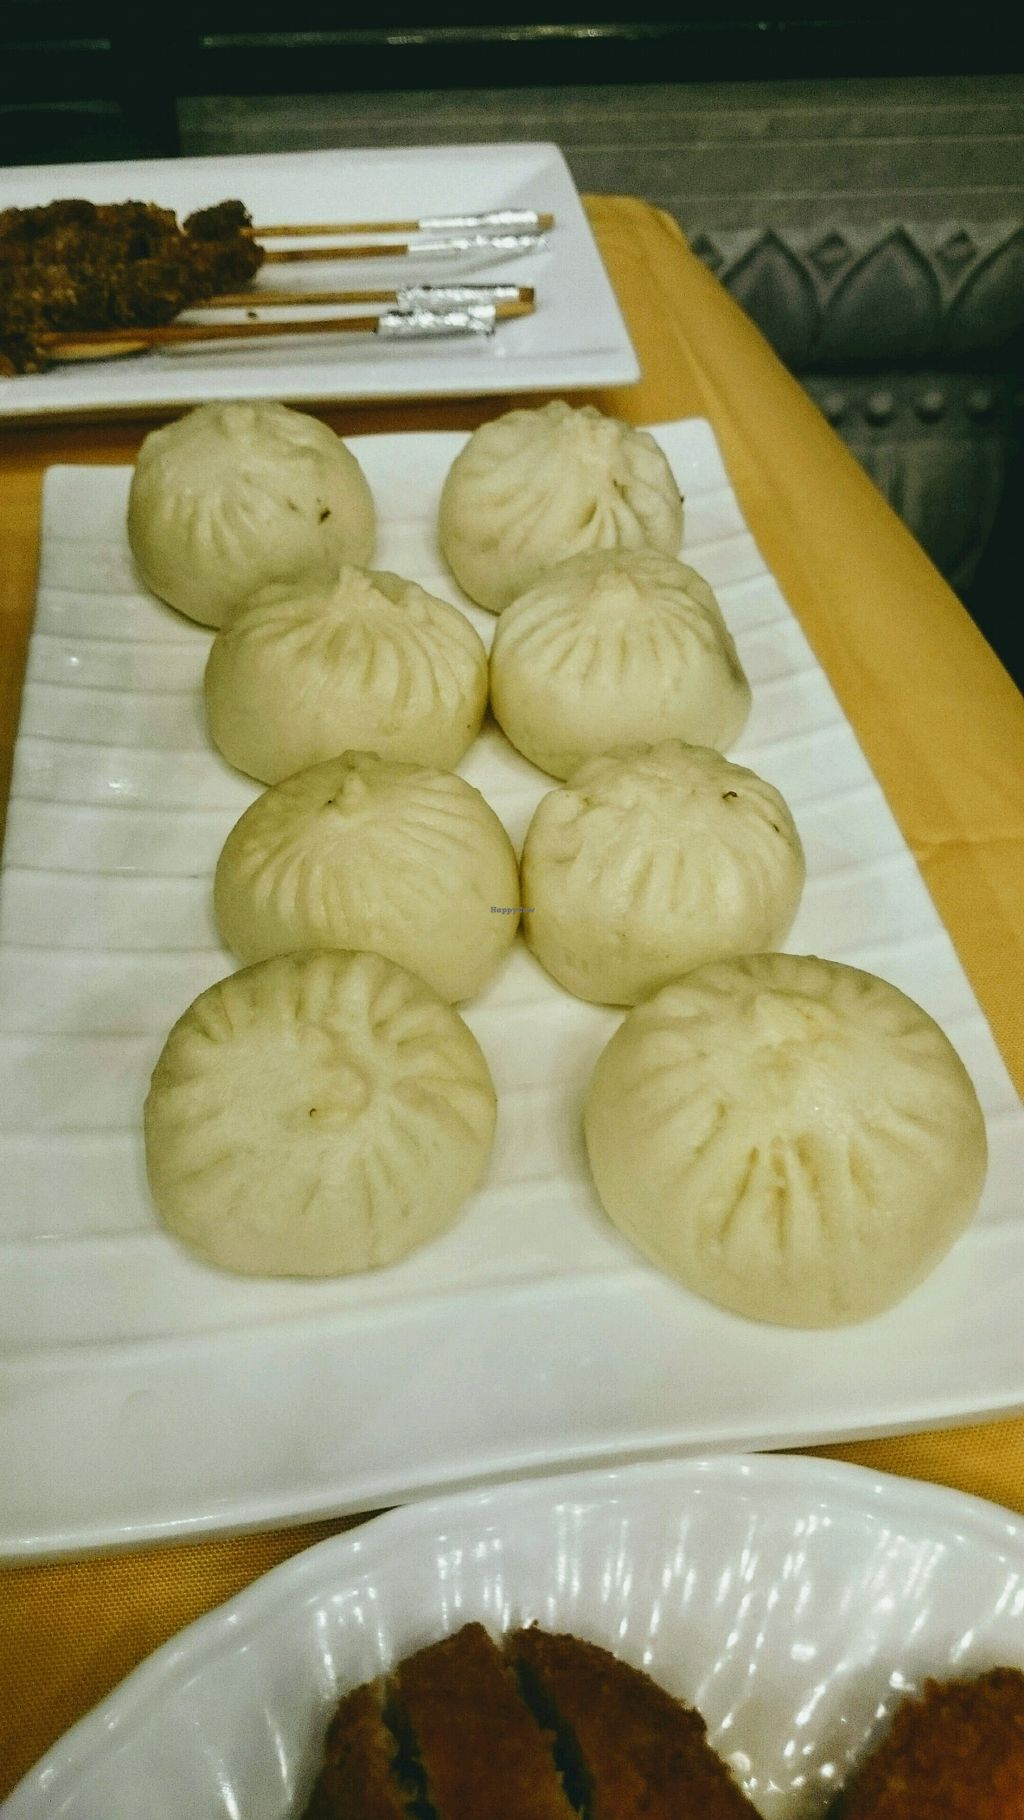 """Photo of Gongdelin Vegetarian Restaurant  by <a href=""""/members/profile/MonikaZar"""">MonikaZar</a> <br/>Dumplings  <br/> February 21, 2018  - <a href='/contact/abuse/image/18228/362073'>Report</a>"""